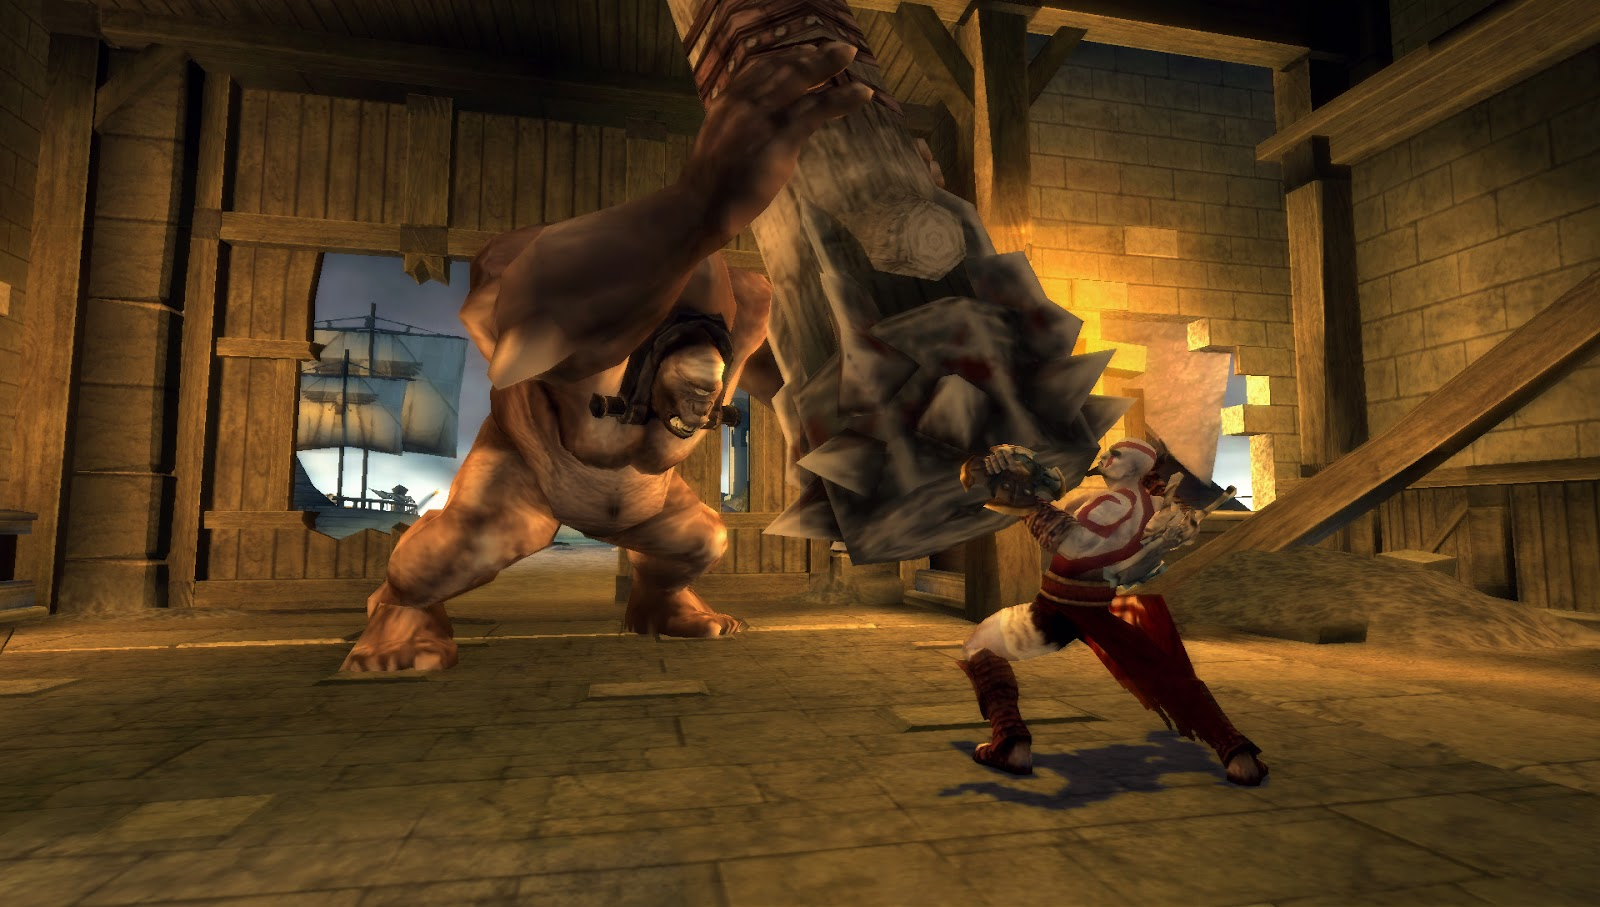 download game god of war 3 ppsspp cso